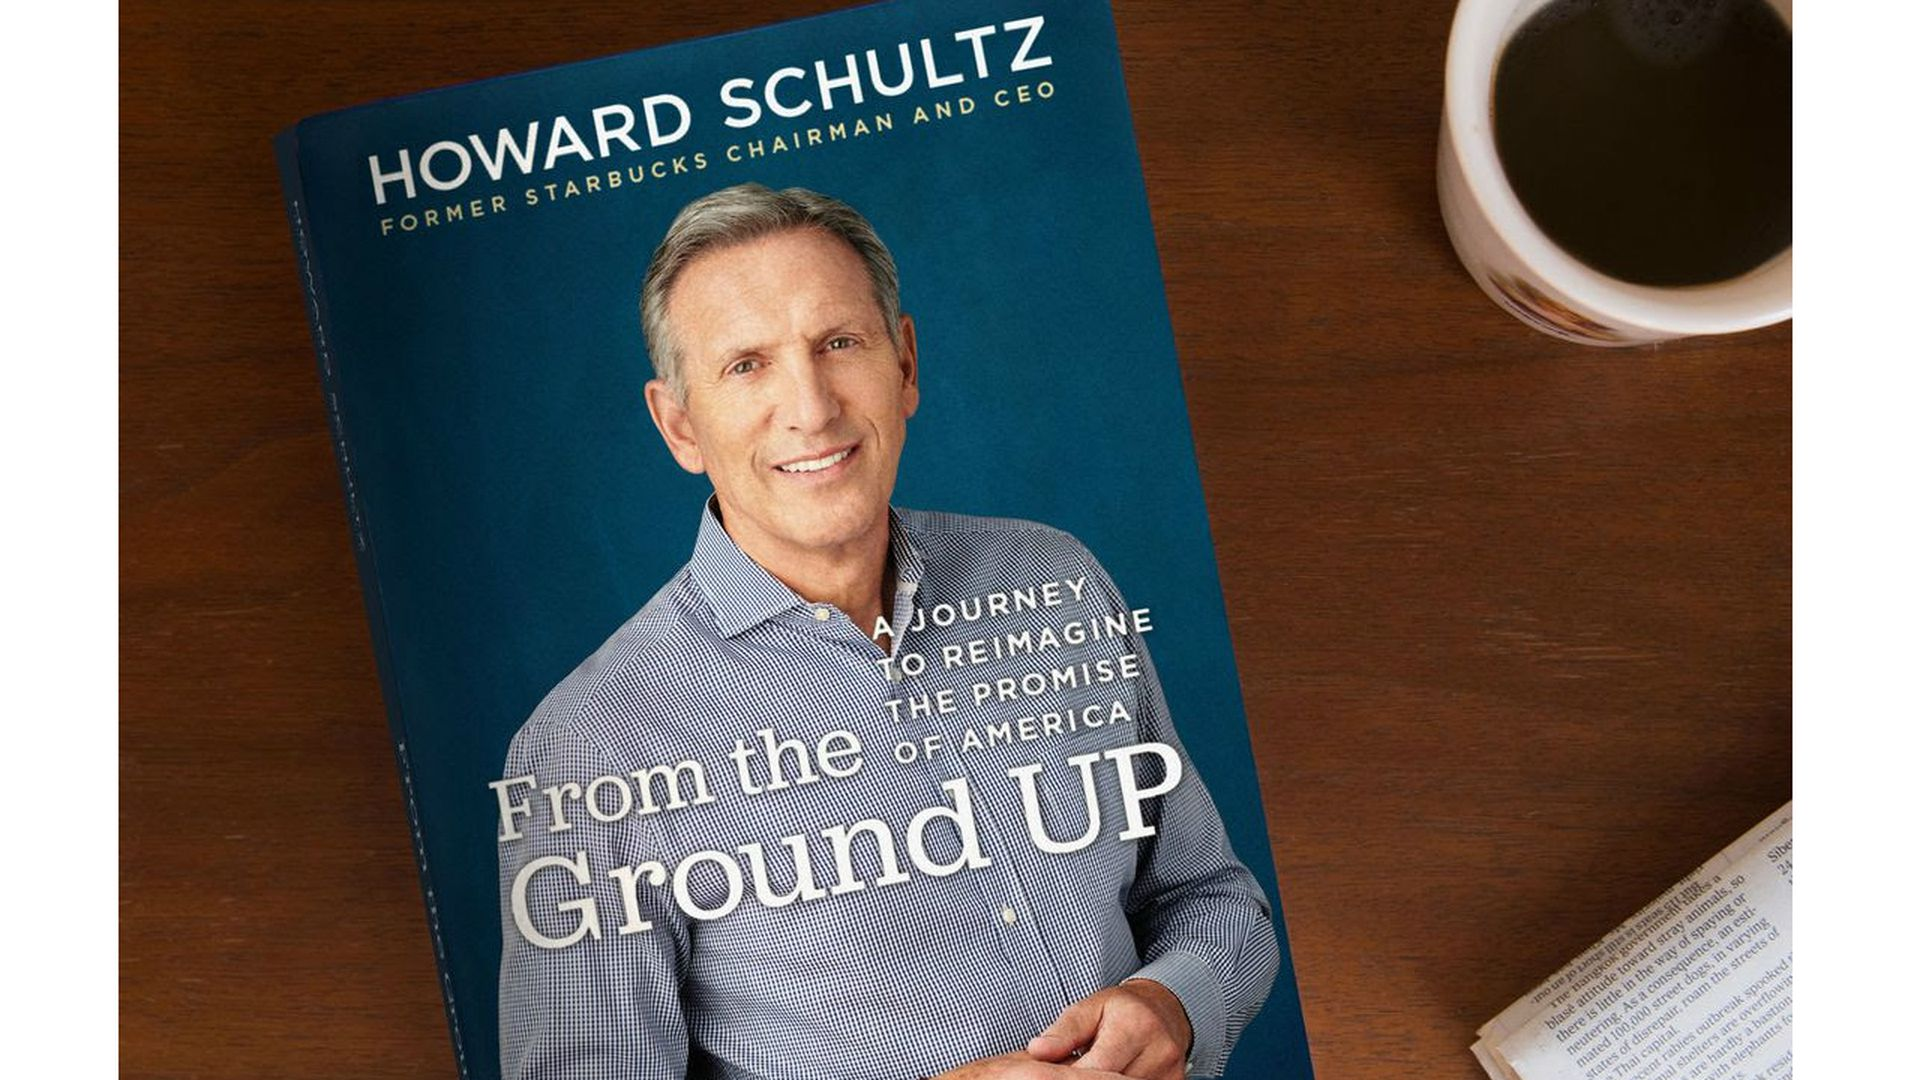 Howard schultz hits the road